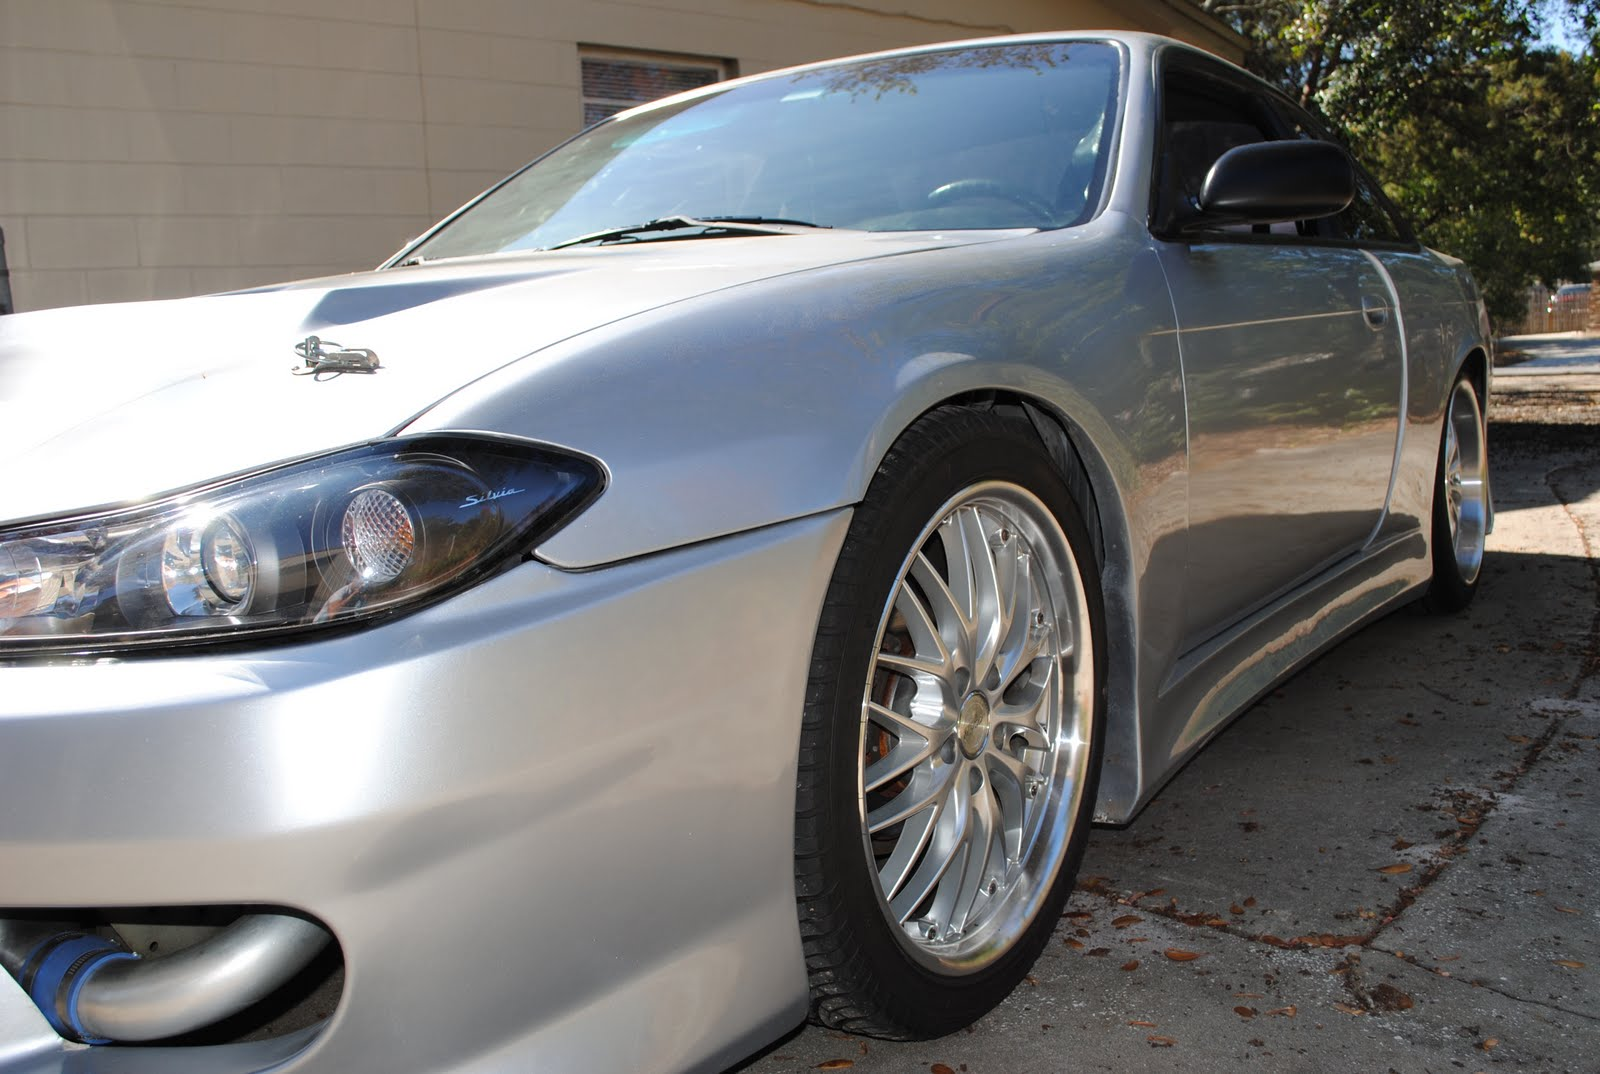 FL 95 s14.5 notchtop SR- widebody/Greddy/Tomei/HKS ...